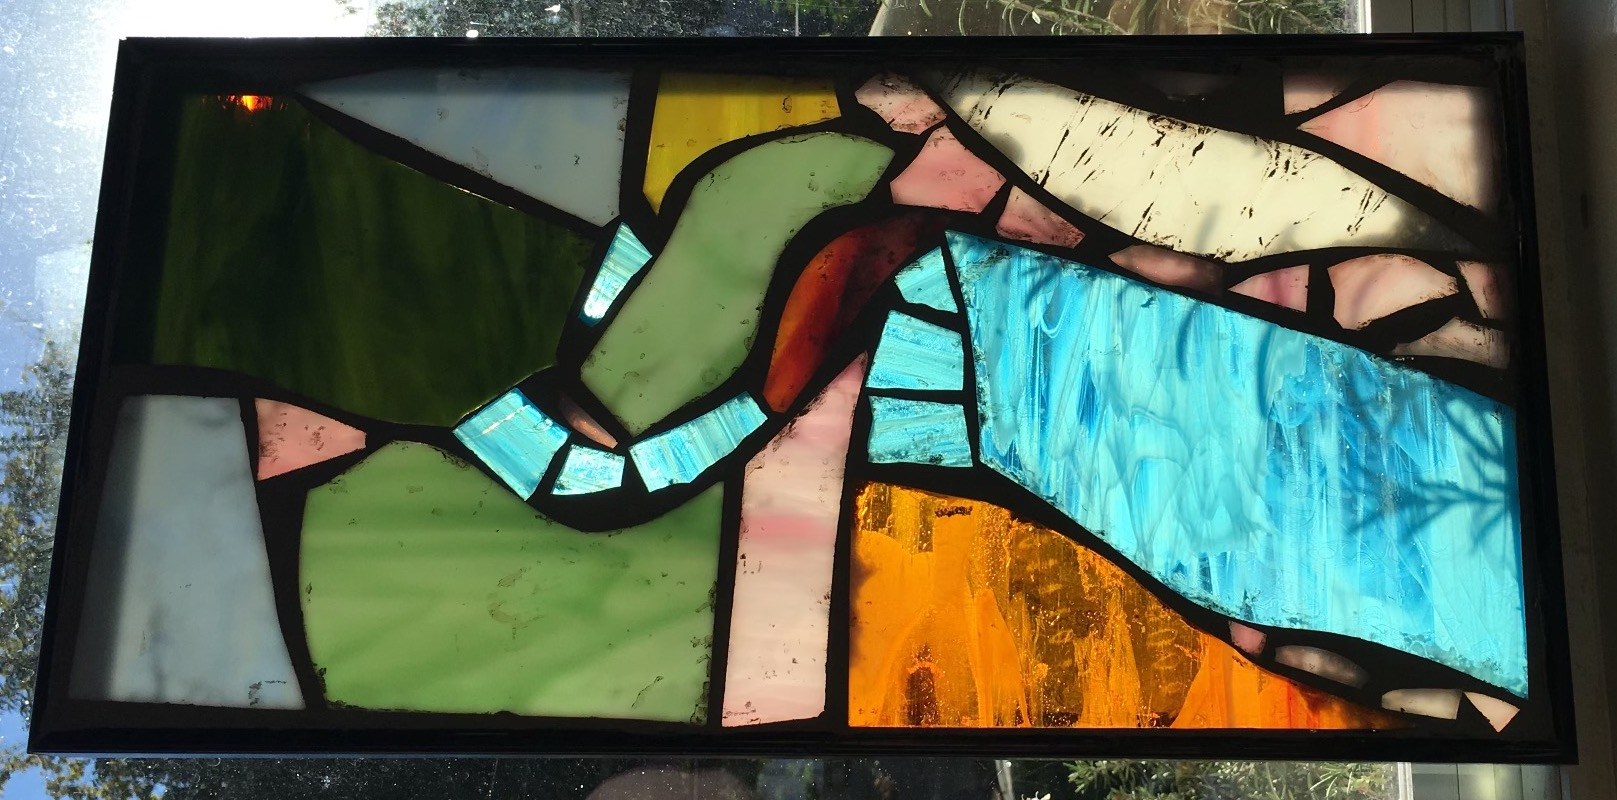 A framed abstract stained glass piece in a window